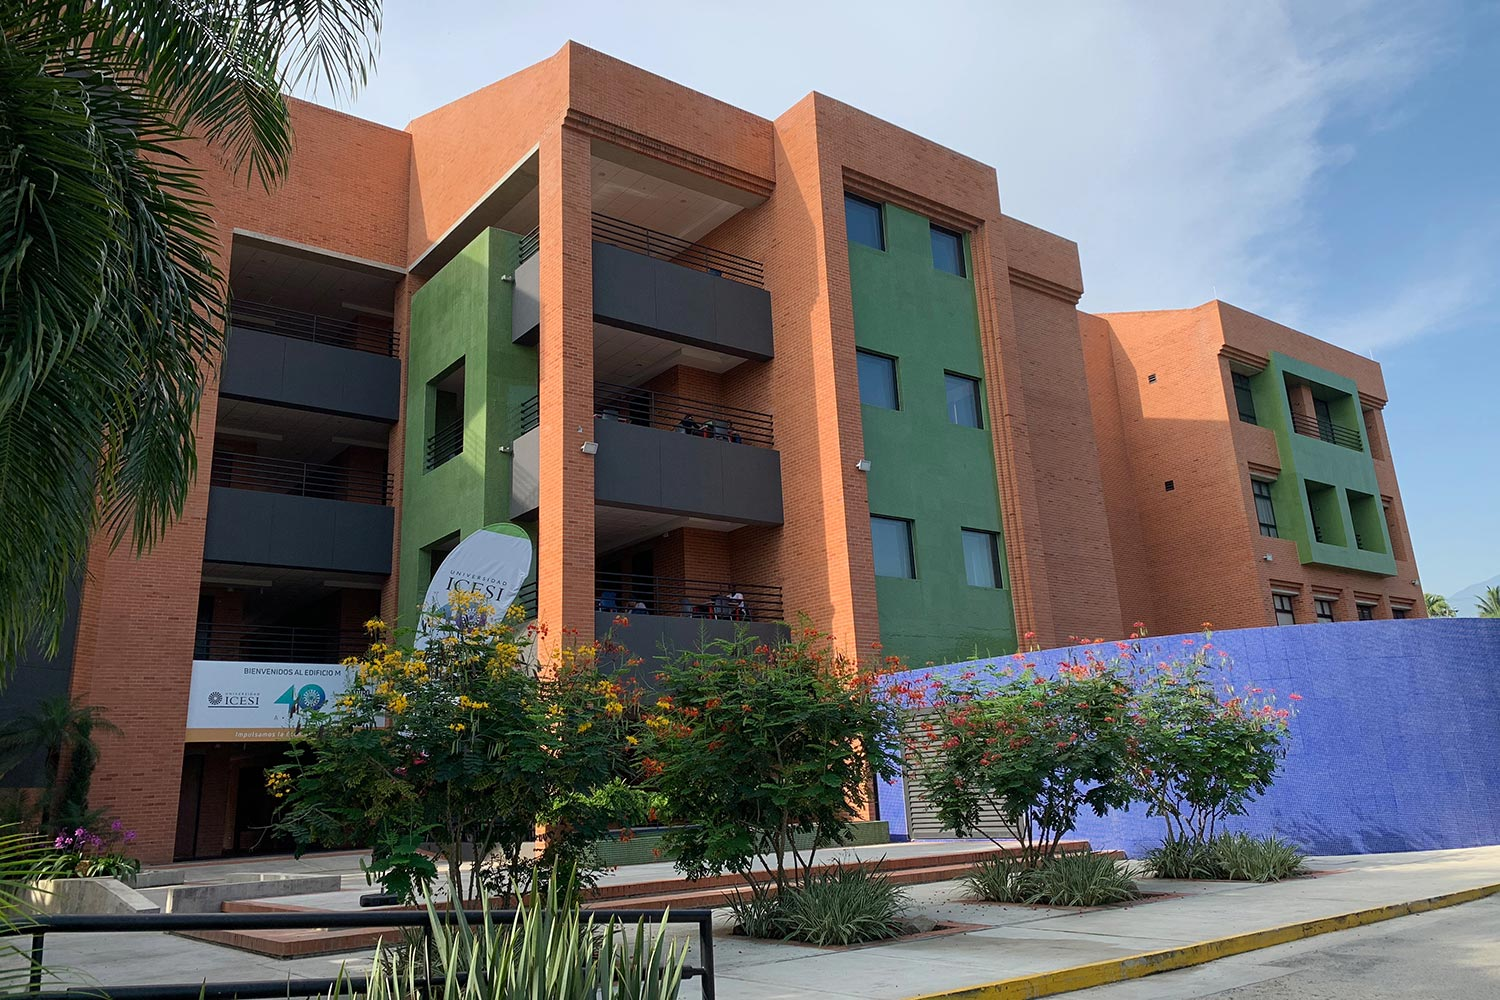 Universidad ICESI in Cali, Colombia commissioned WSDG to design their new music performance, composition and production building with world-class recording studios. Building M Exterior.